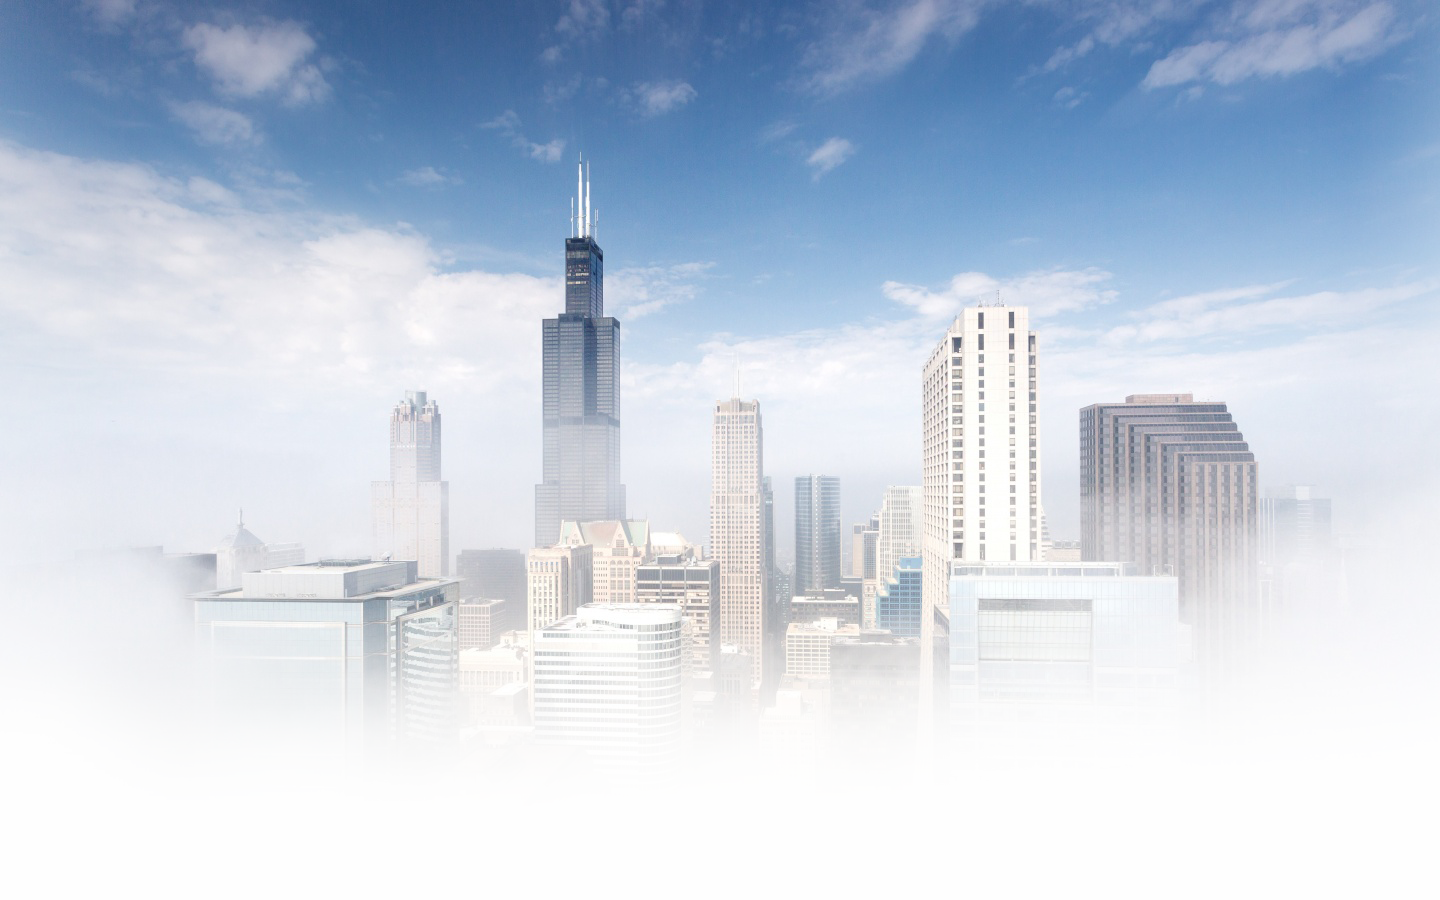 chicago fog wallpaper